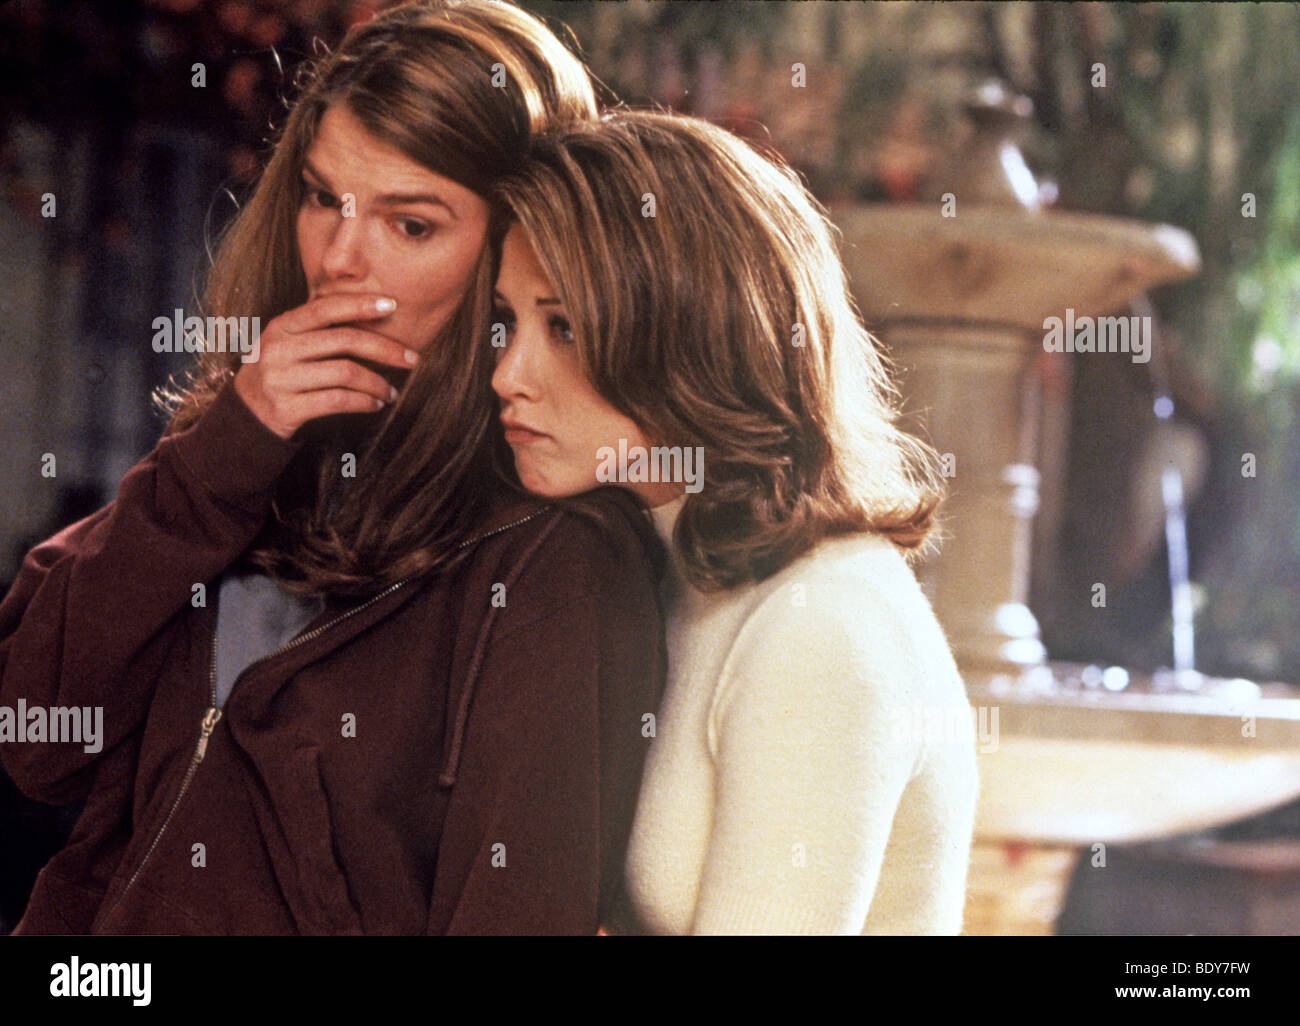 'TIL THERE WAS YOU  - 1990 Rank/Five Arrows film with Jeanne Tripplehorn at left and Sarah Jessica Parker - Stock Image